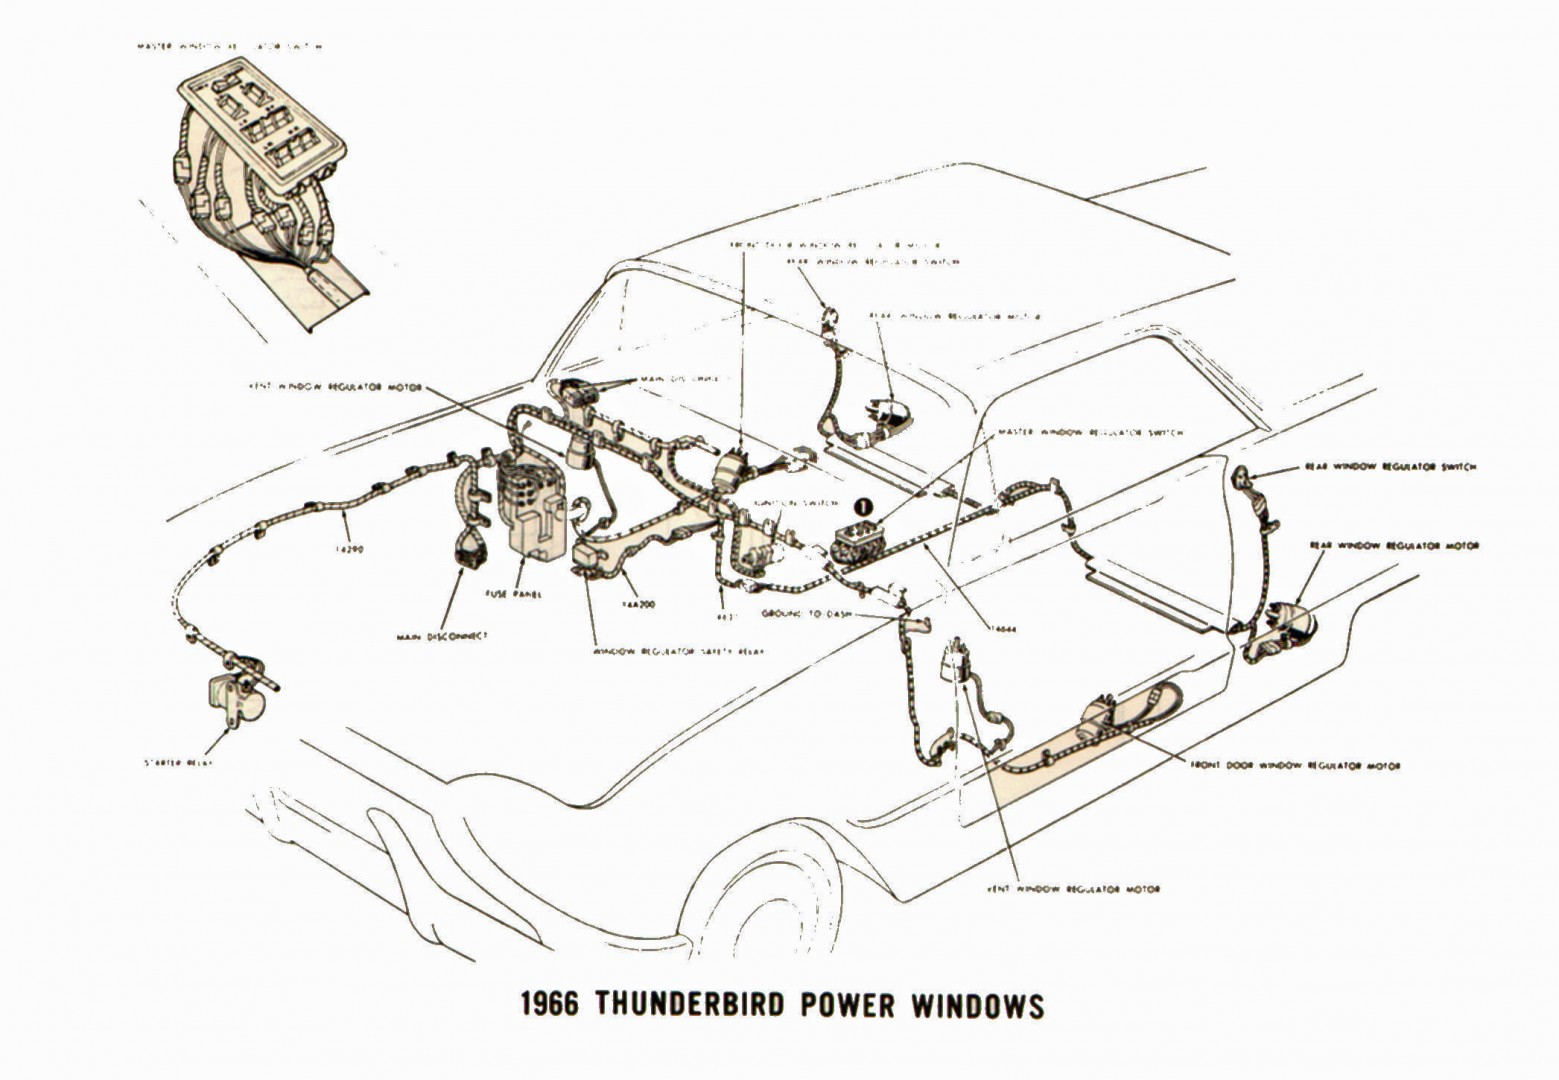 1966 Ford Thunderbird power windows ford thunderbird shop manuals 1964 thunderbird wiring diagram at bayanpartner.co